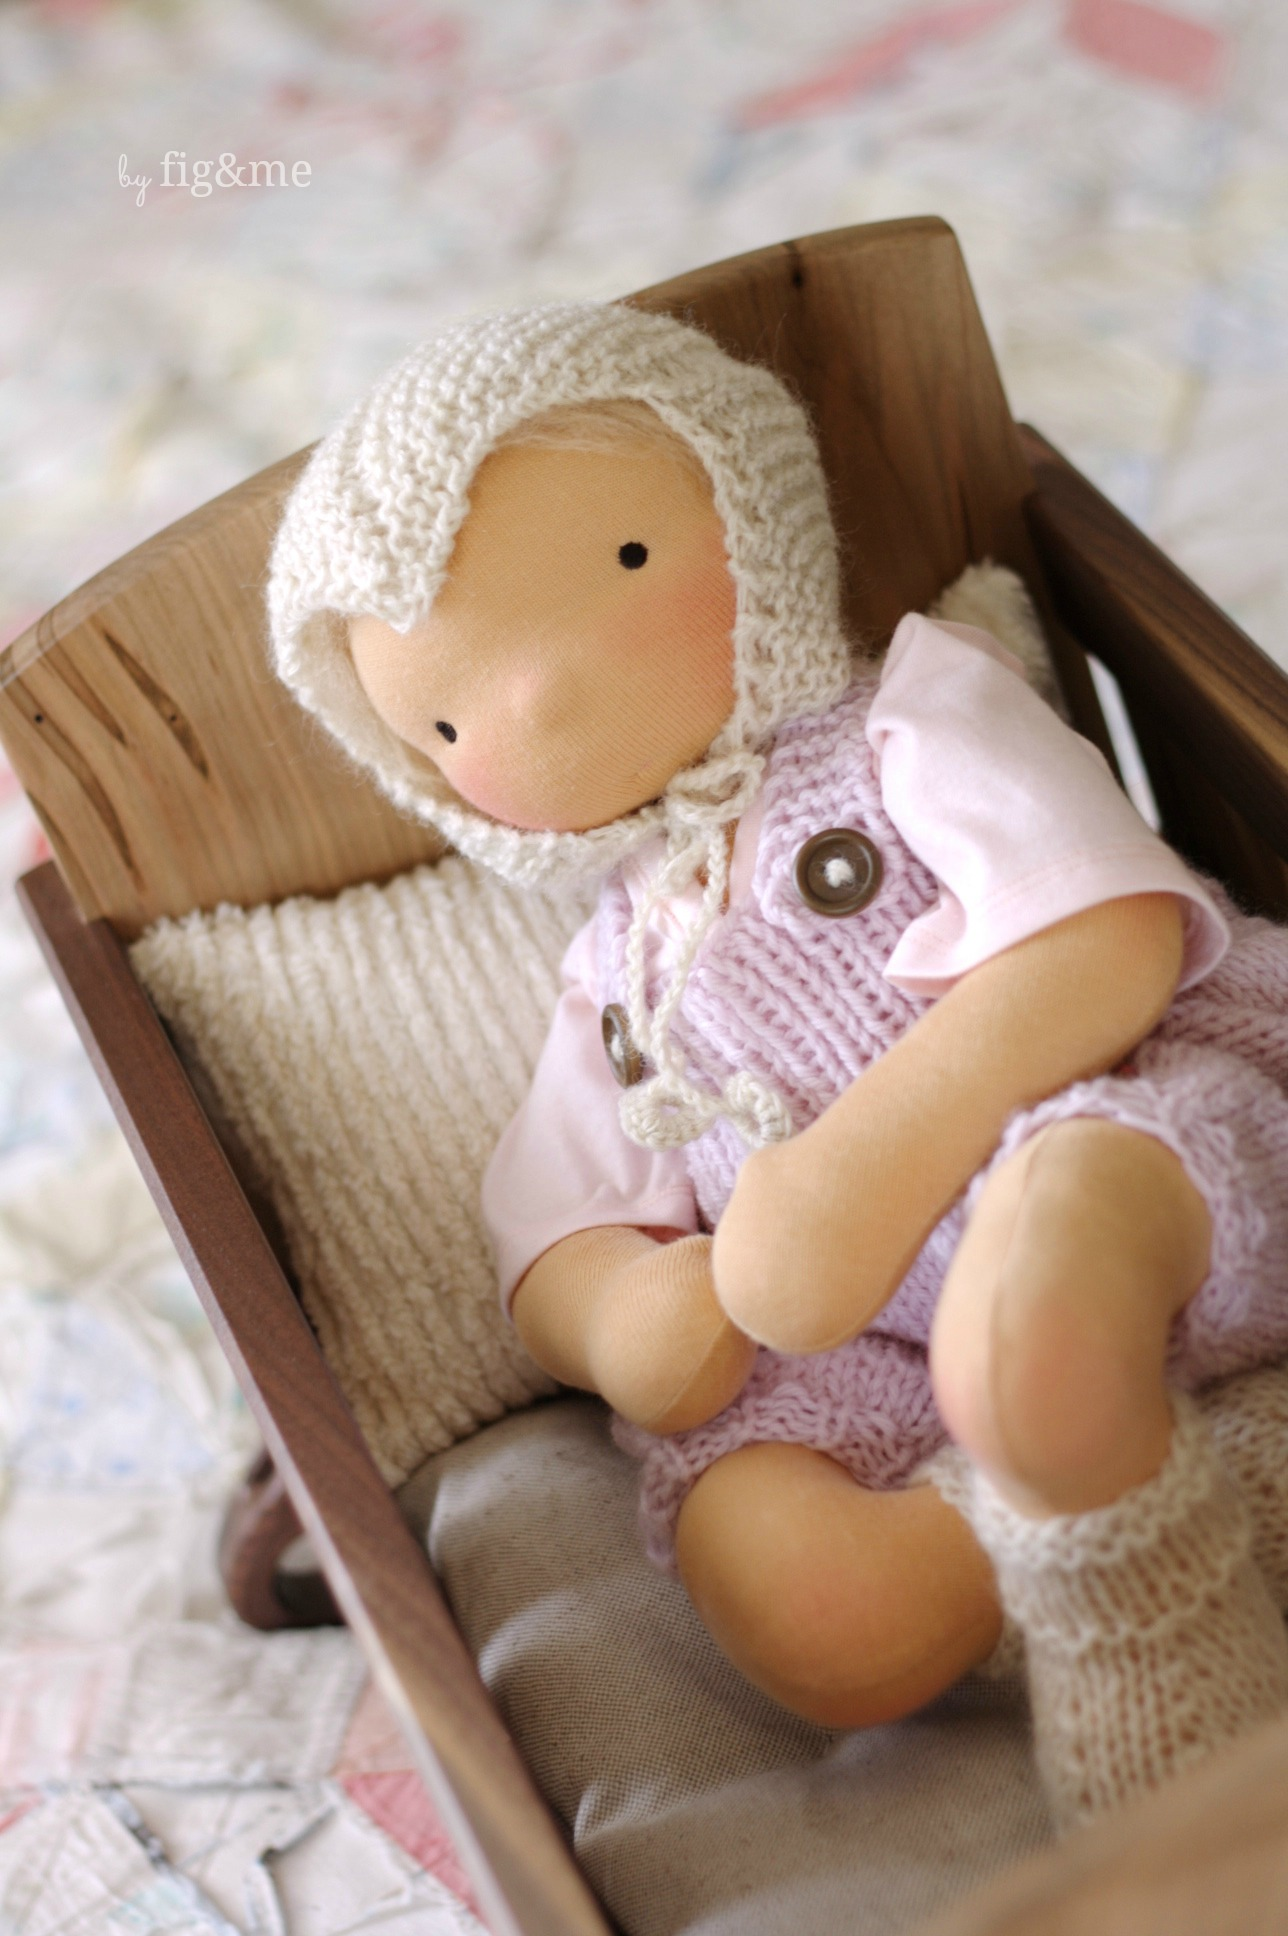 Baby Lou and her hand knit clothes, by Fig&me